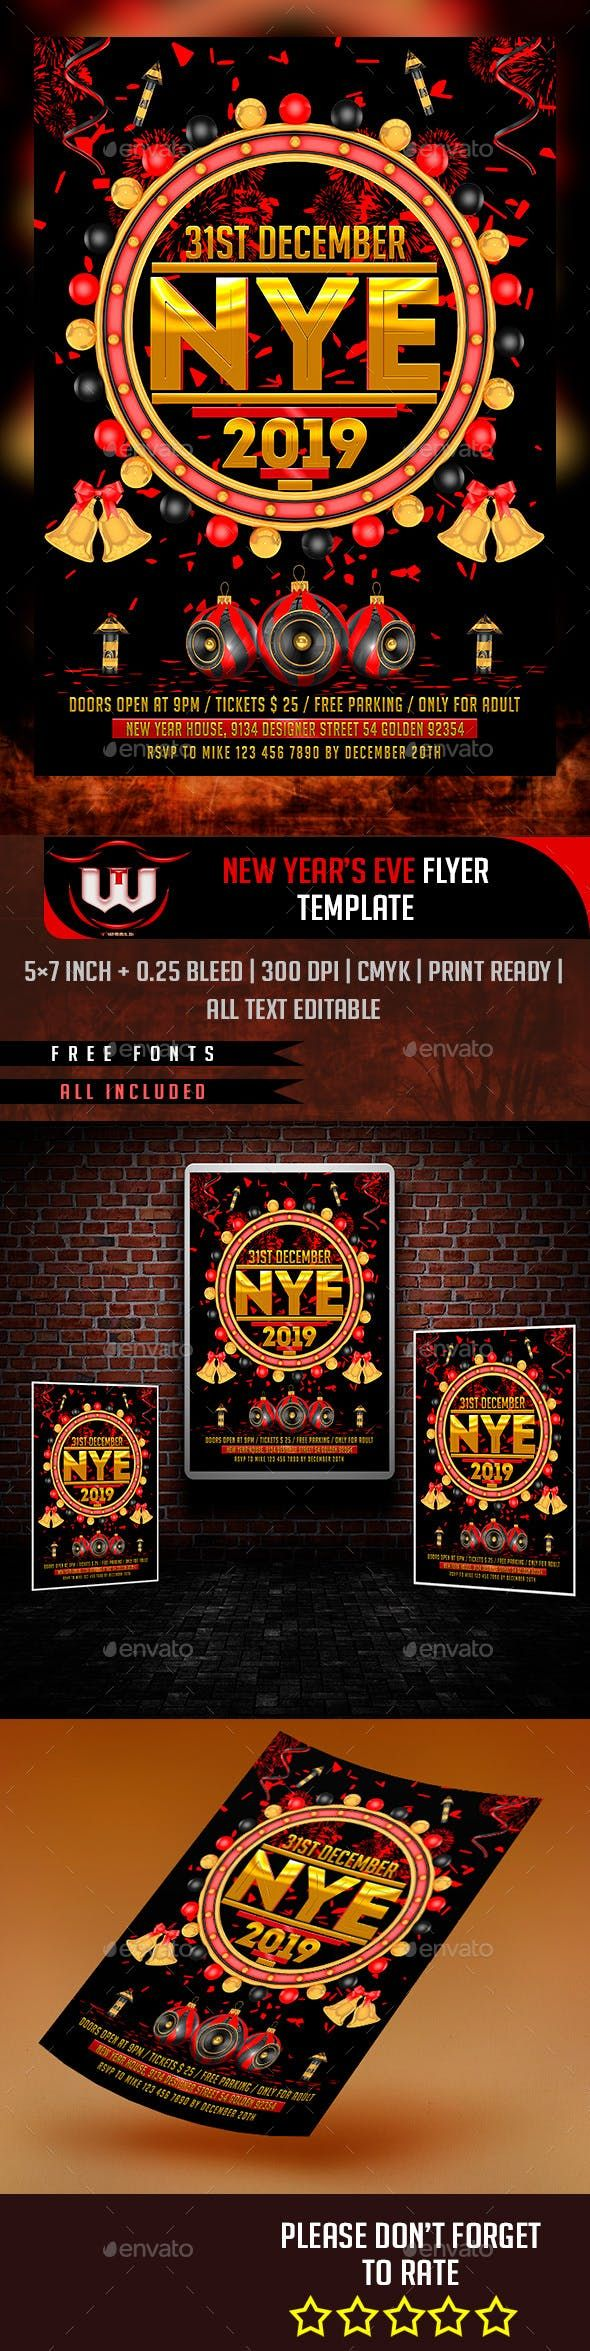 New Year Eve Flyer Events Flyers New year's eve